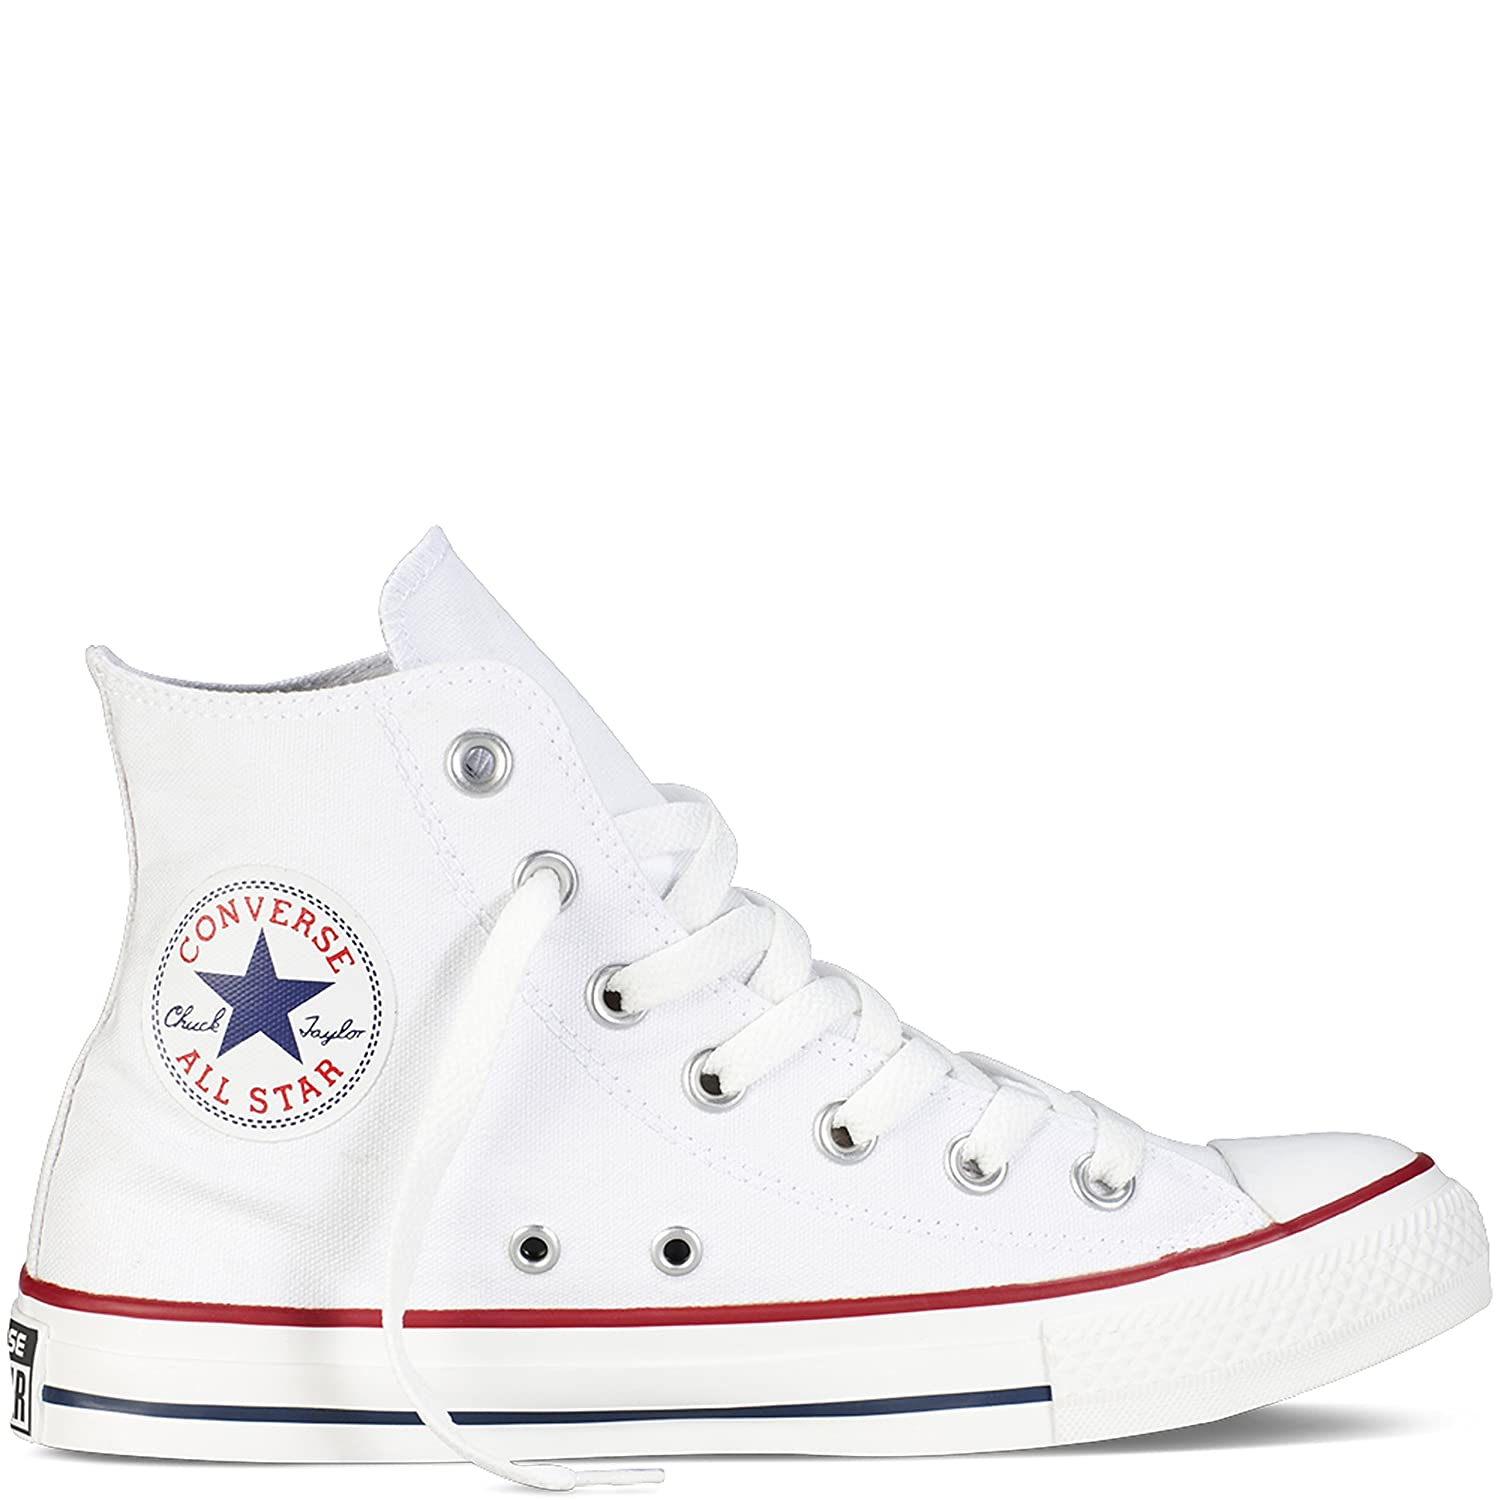 Womens Converse All Star High Top